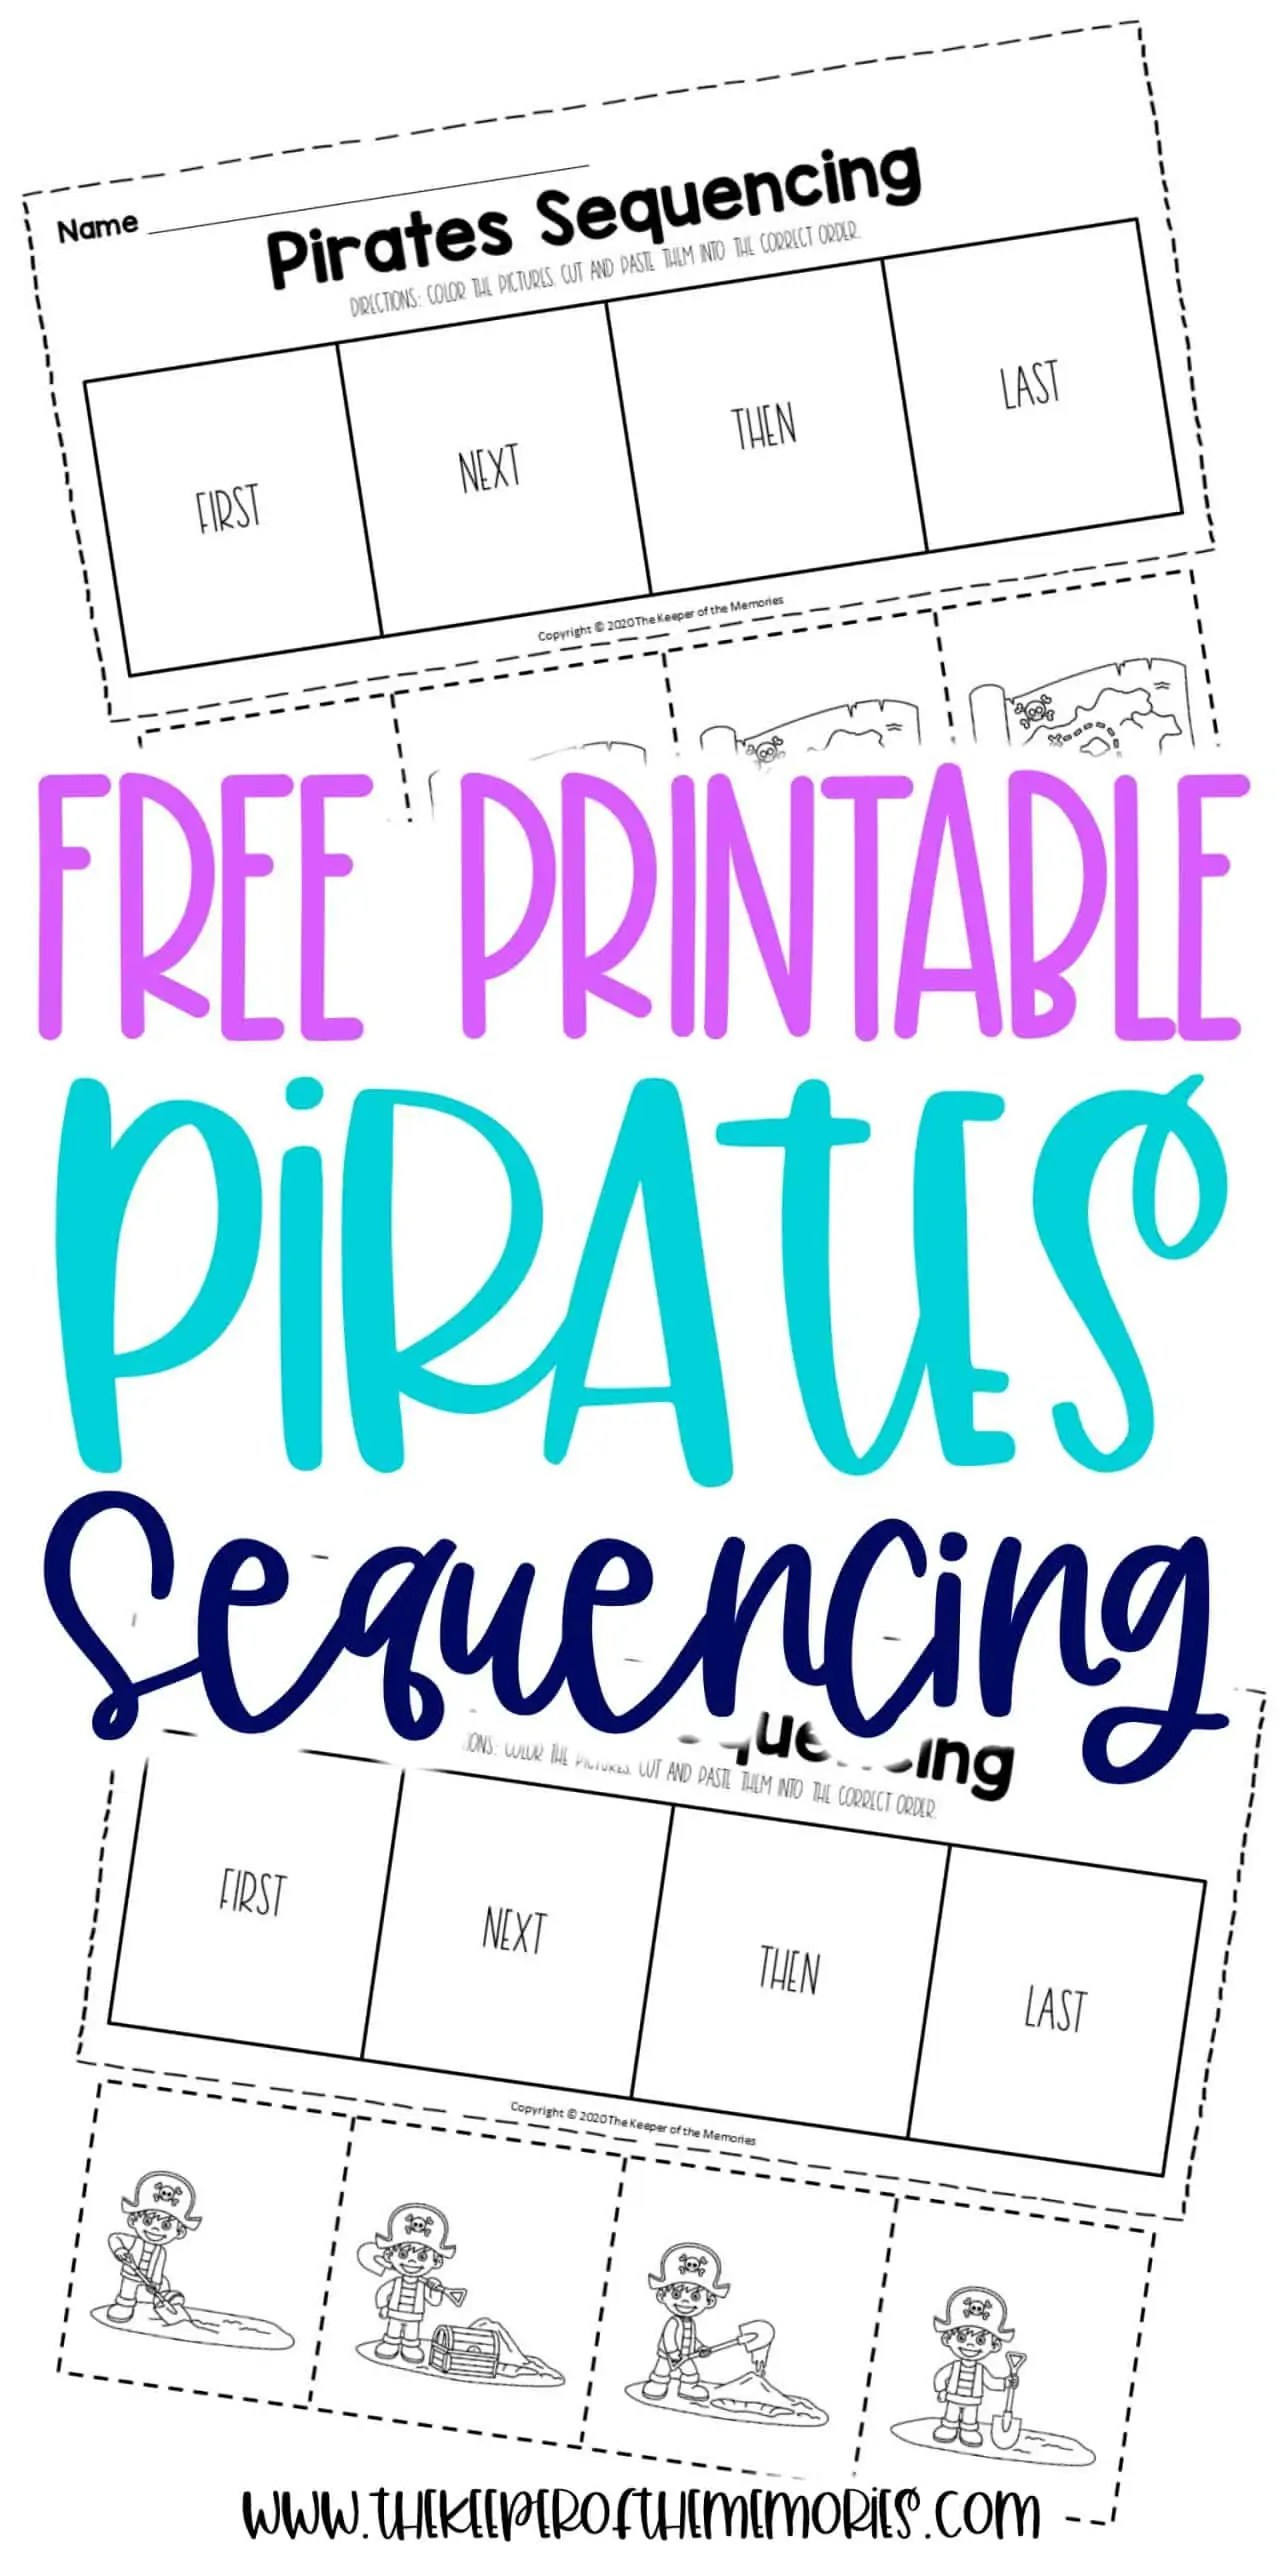 Free Printable Sequencing Worksheets For Preschoolers